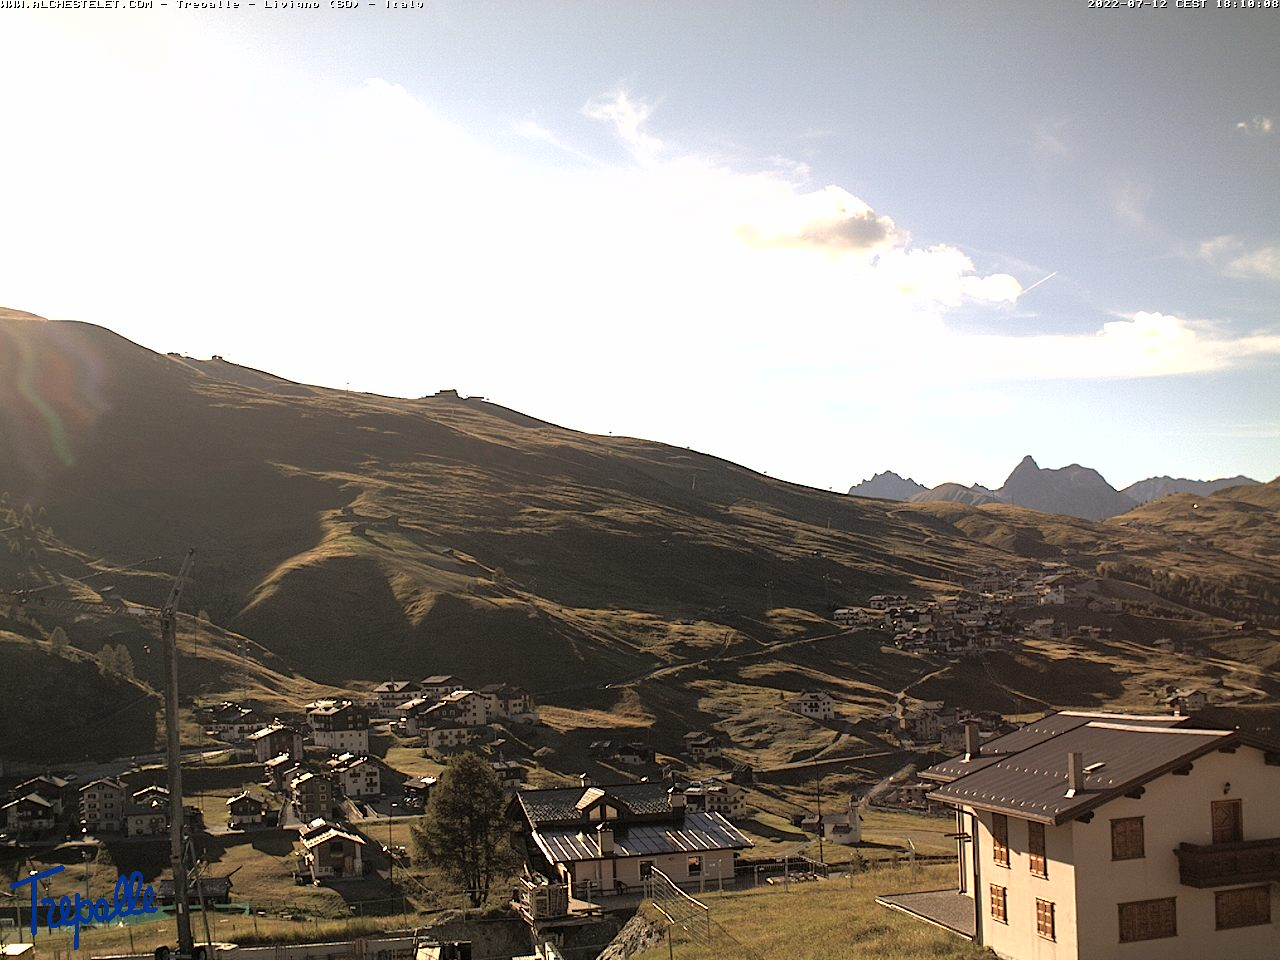 Livigno Trepalle Webcam